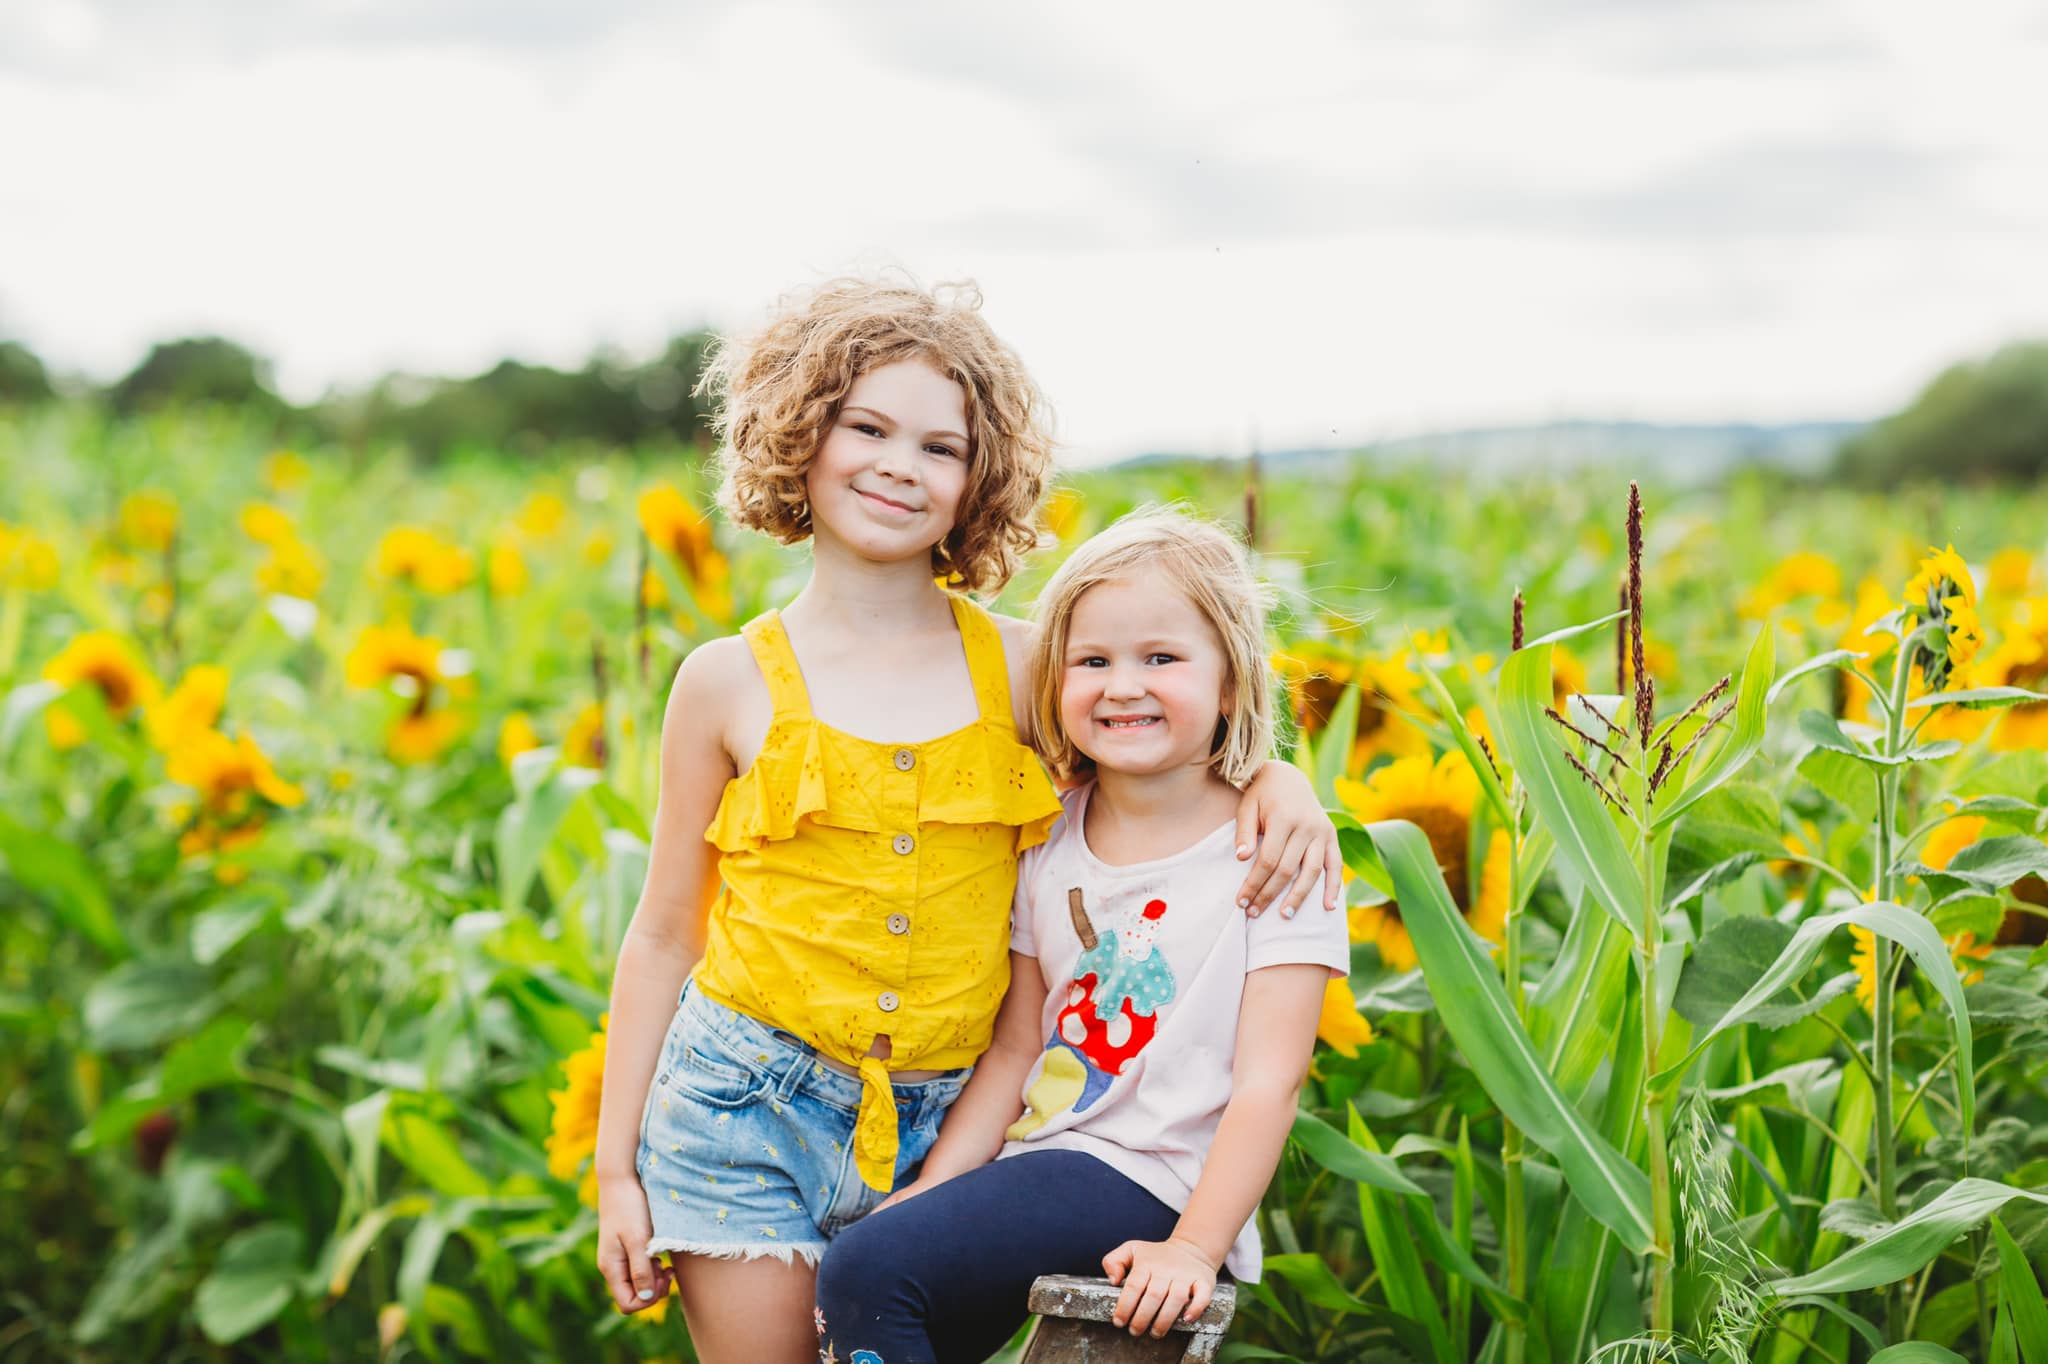 sisters in sunflowers